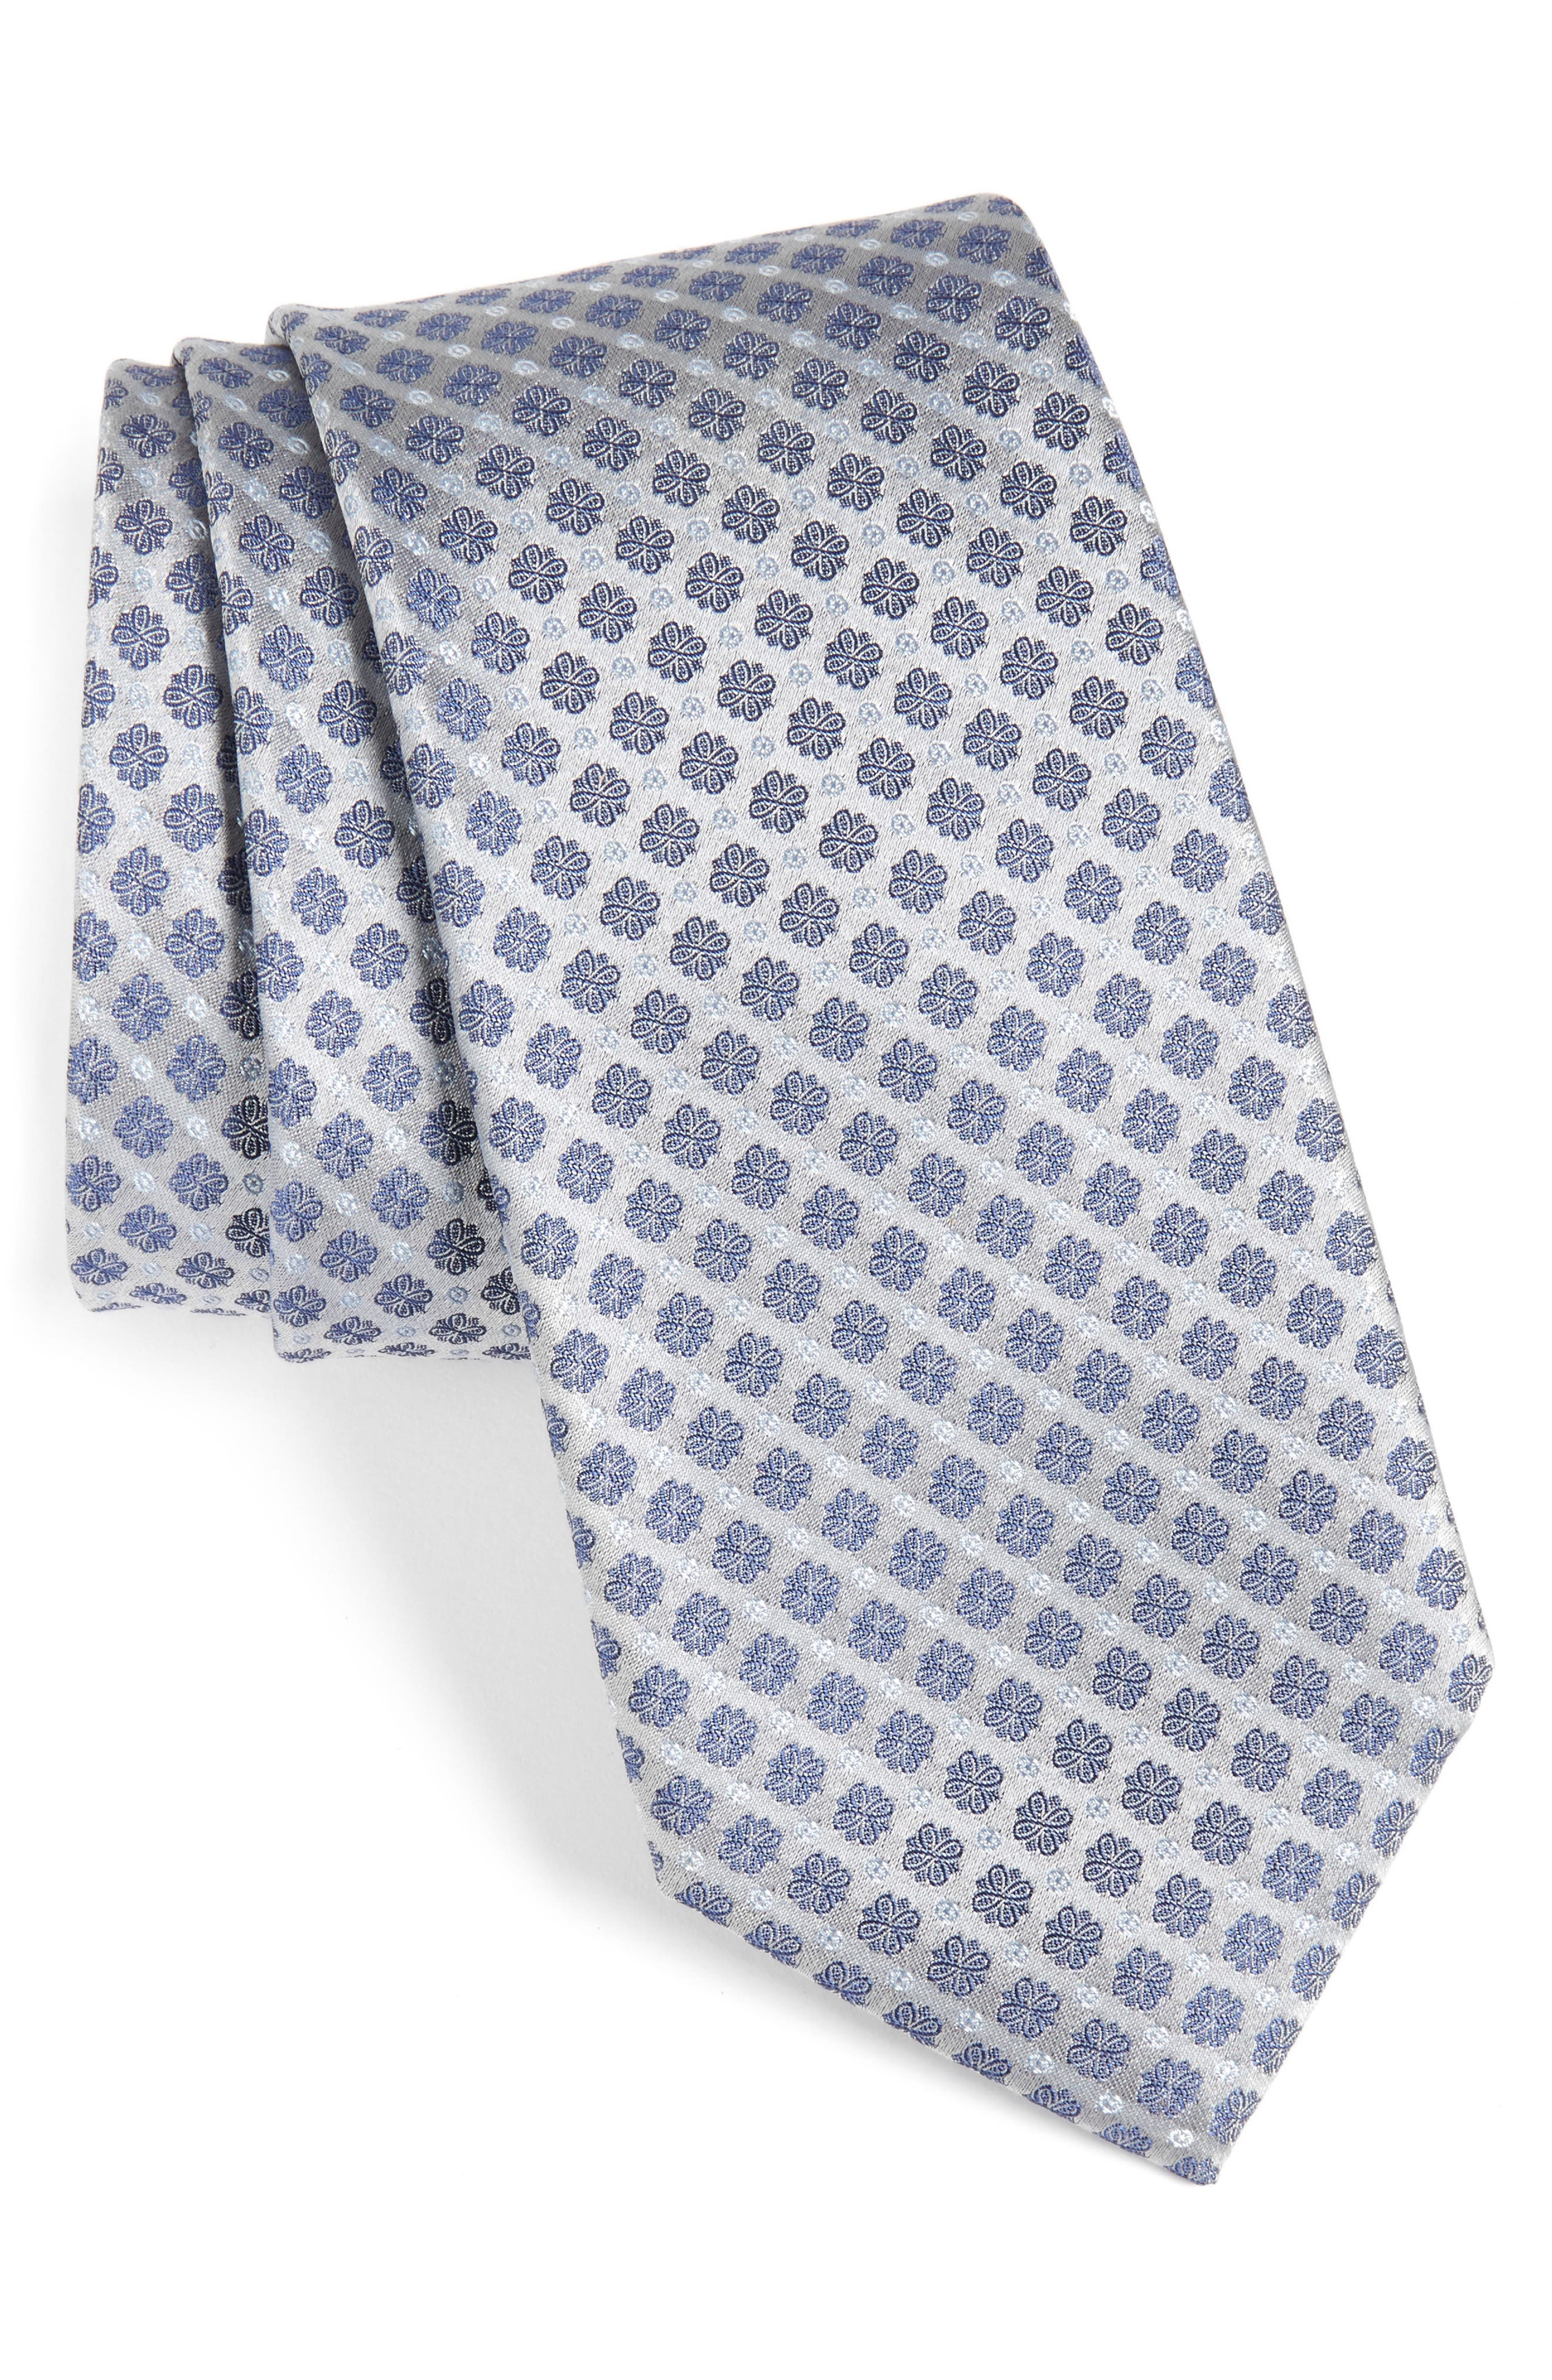 Forget Me Not Floral Silk Tie,                         Main,                         color, 040